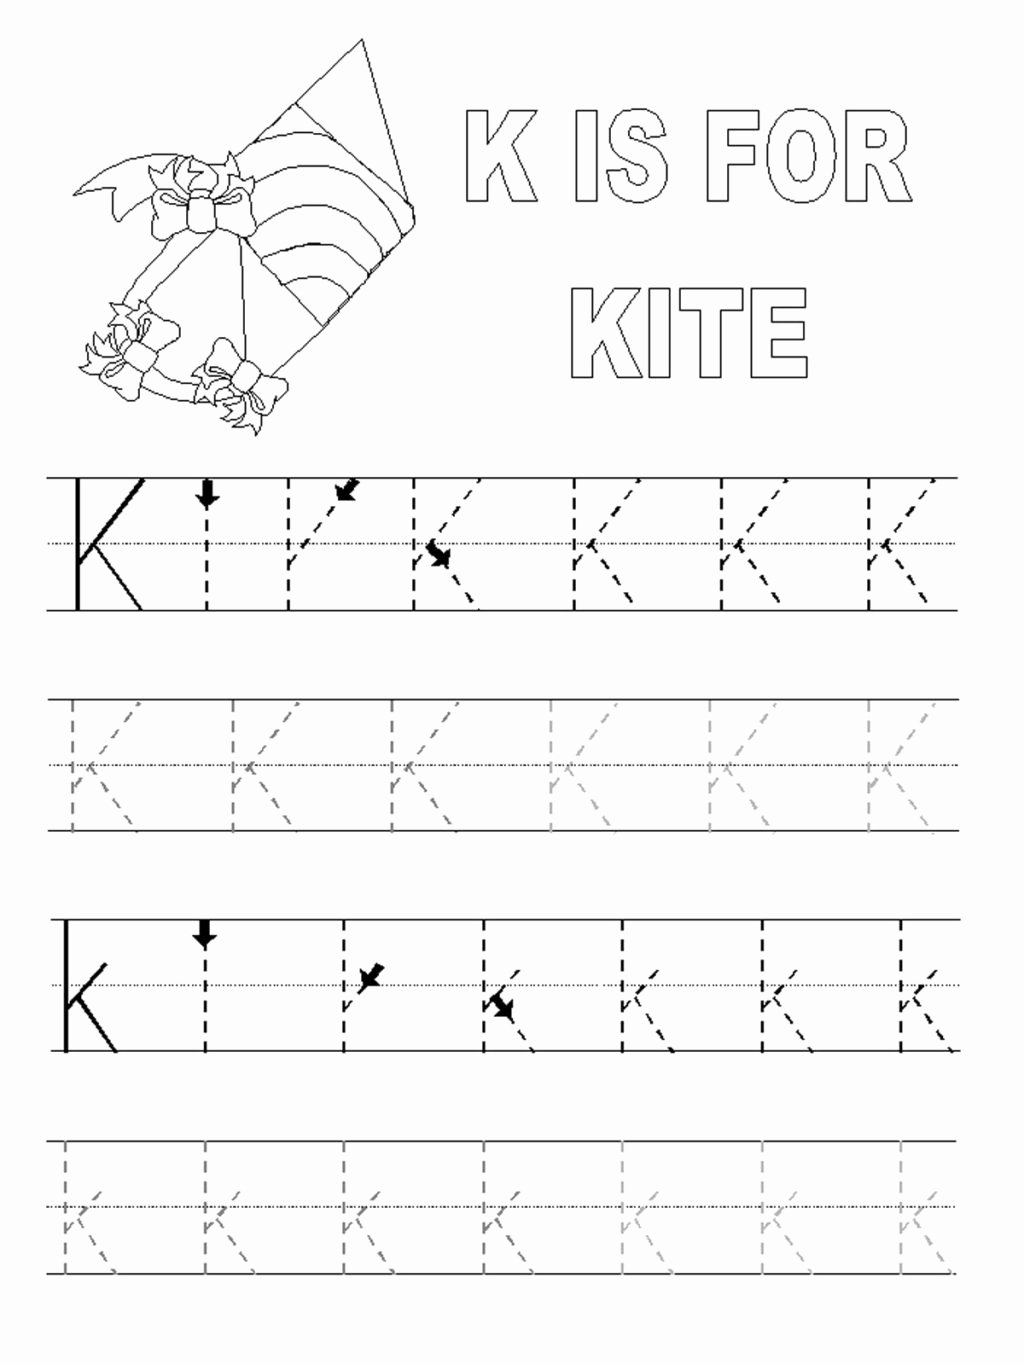 hight resolution of Abc Worksheets for Preschoolers New Worksheet Free Printable Writing Sheets  for Kids – Printable Worksheets for Kids